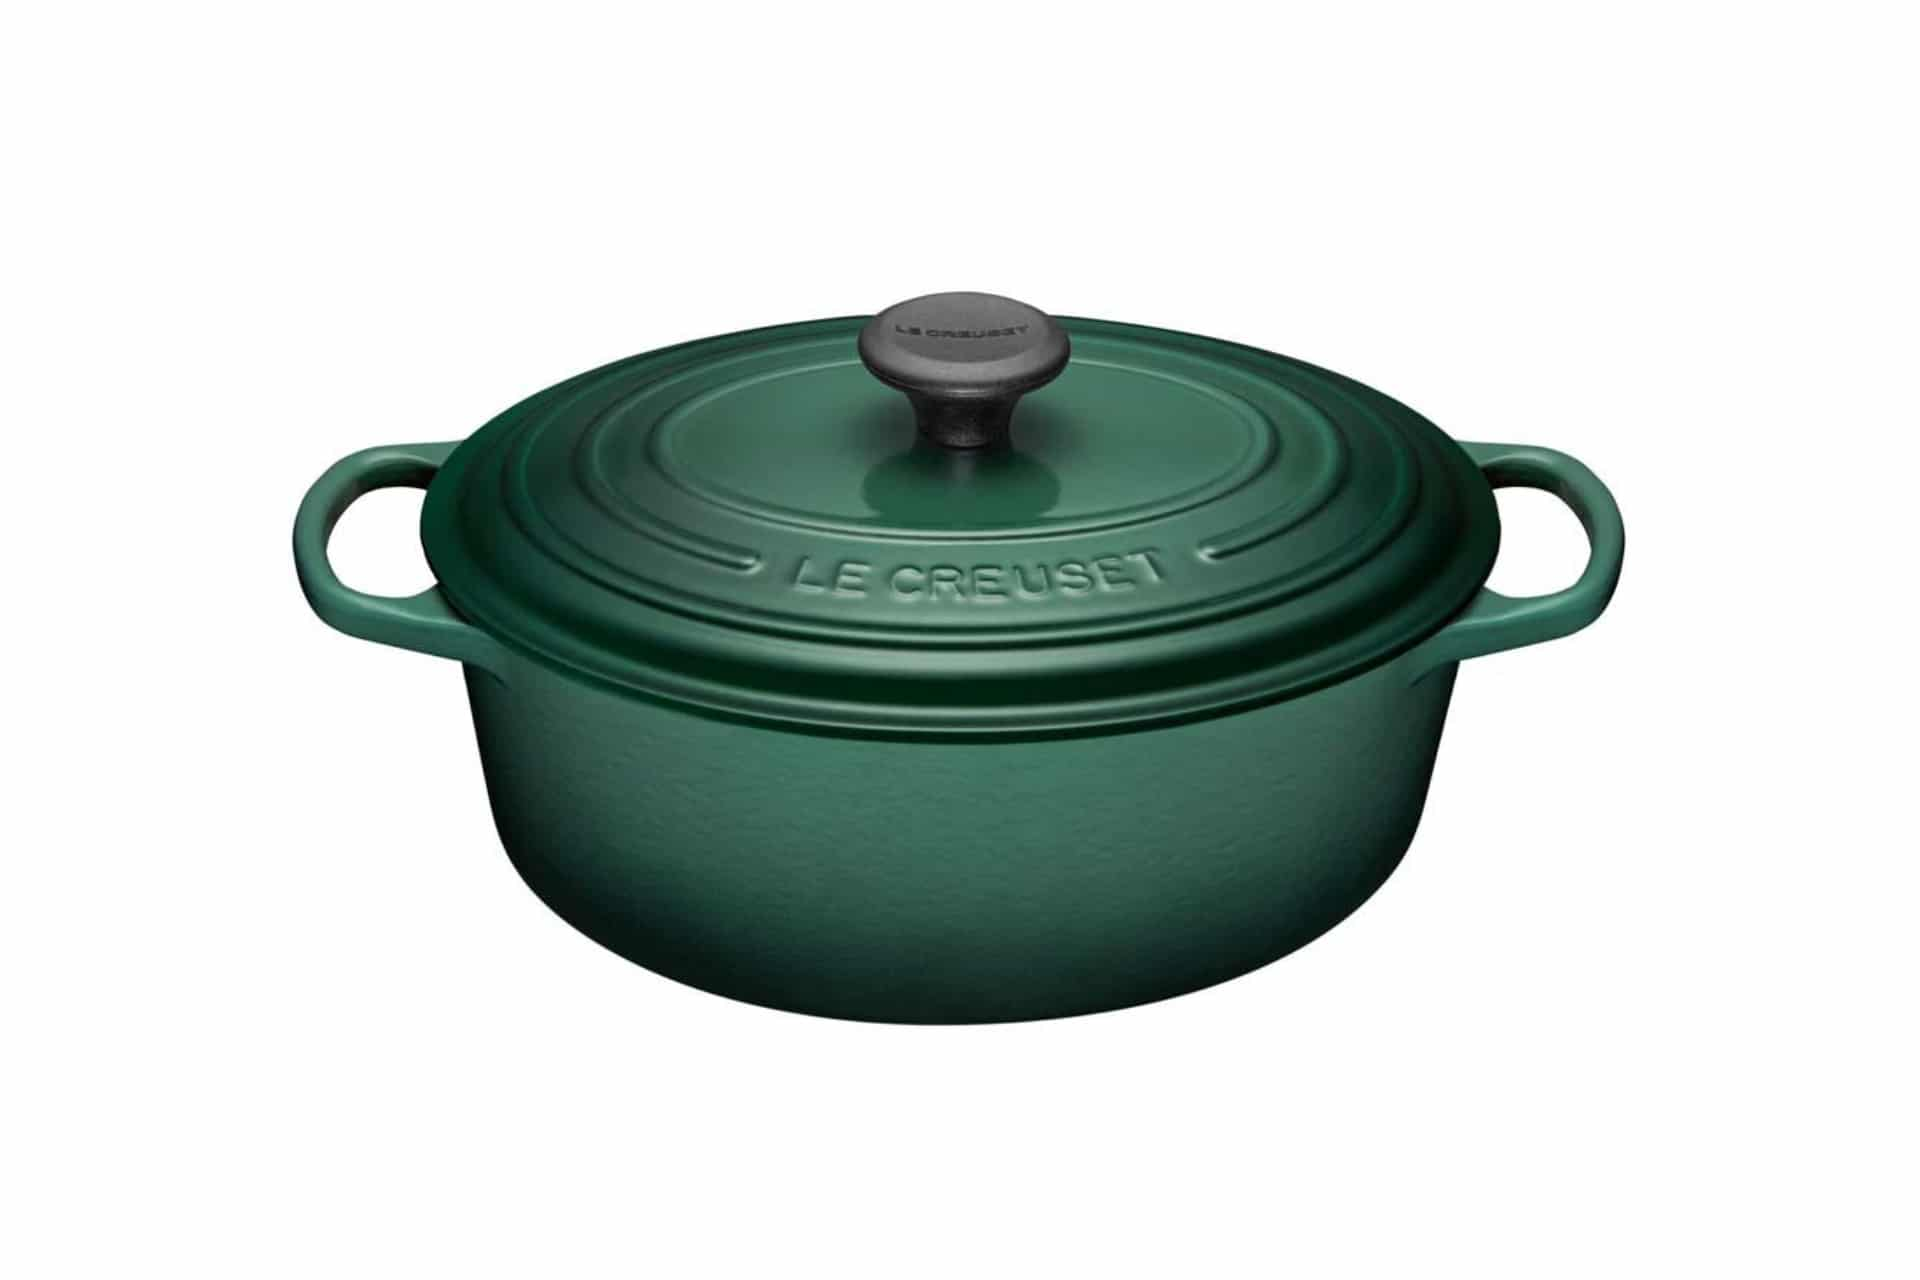 Green Le Creuset French oven on a white background